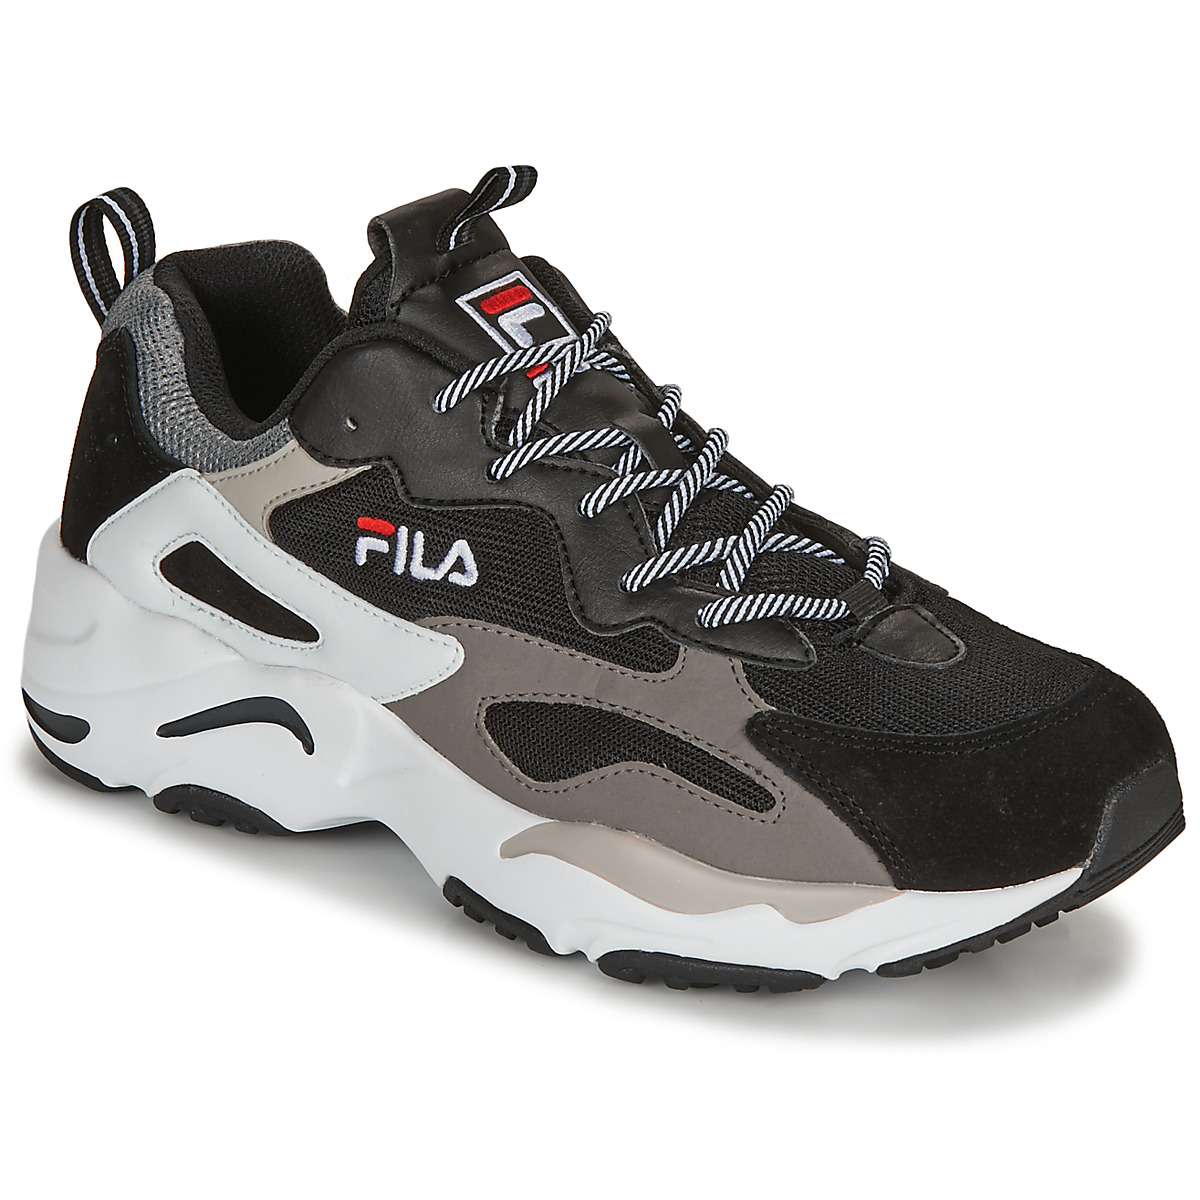 Fila RAY TRACER Black - Fast delivery